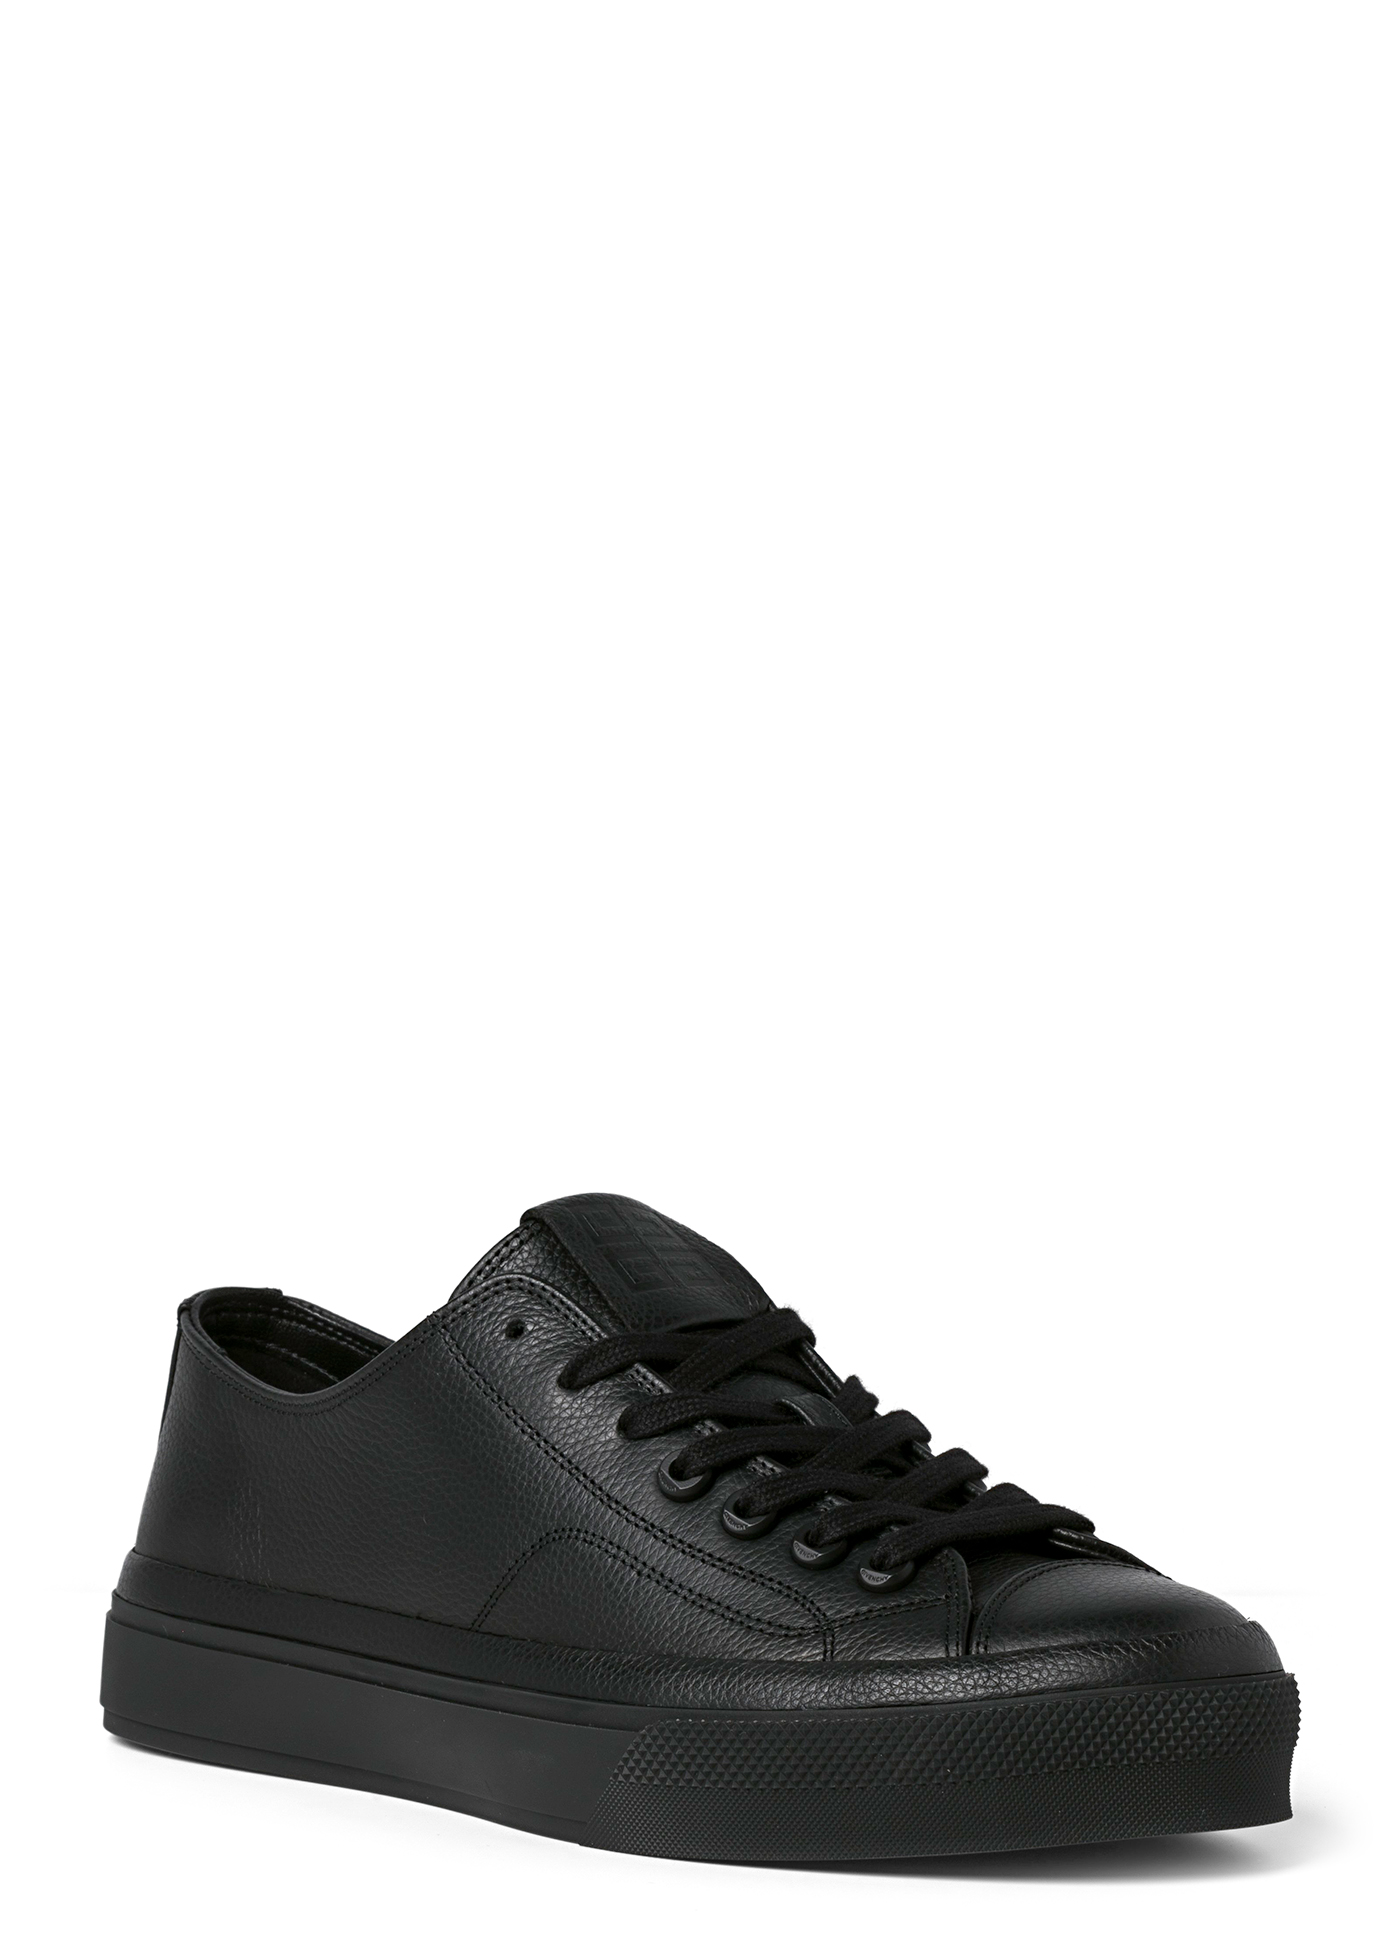 CITY LOW SNEAKER image number 1